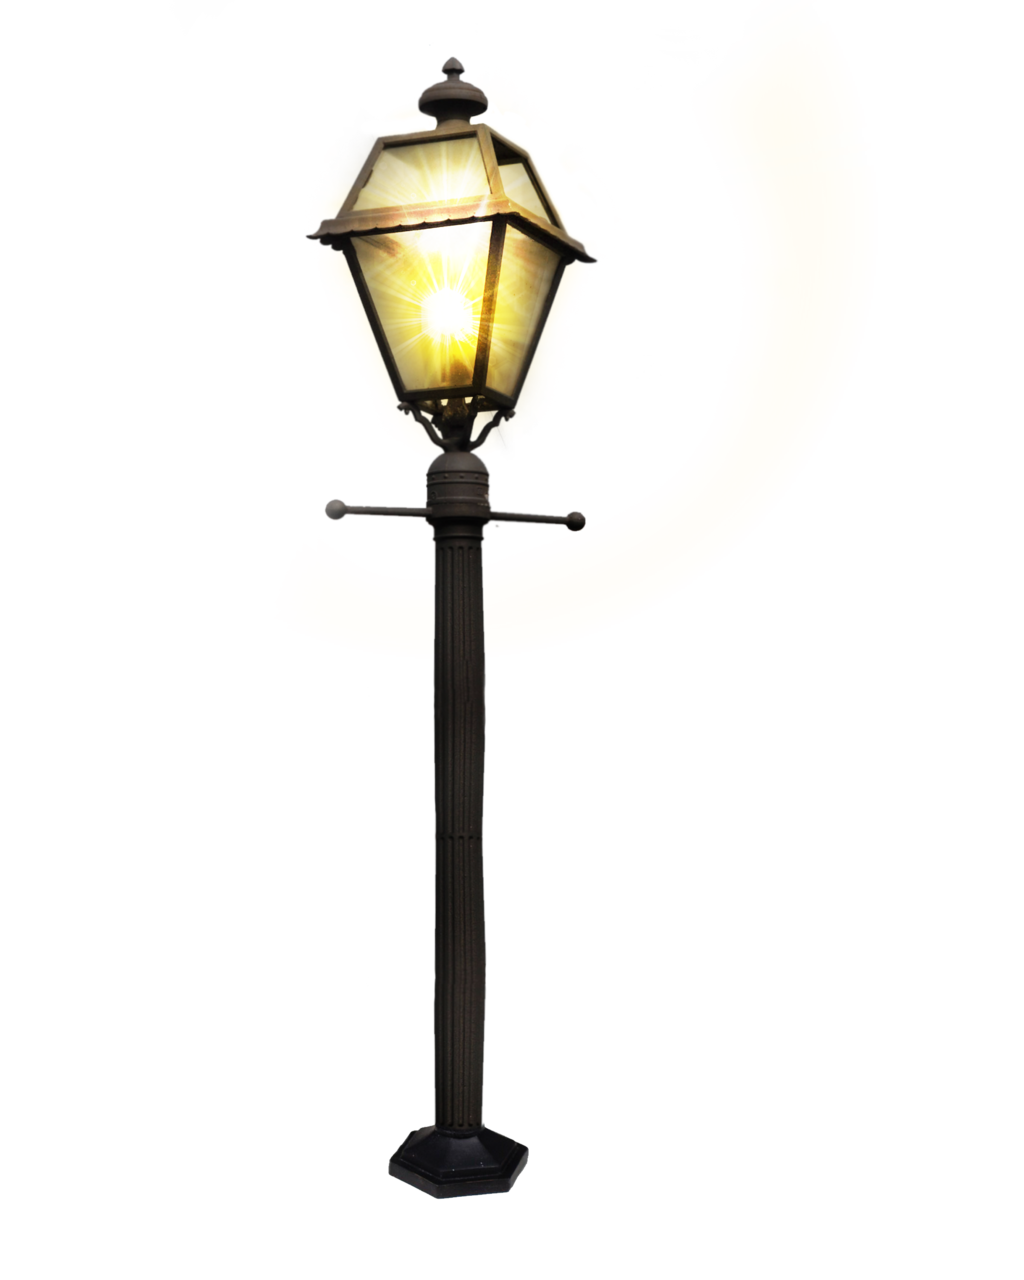 Clipart road street. Lamp post light pencil